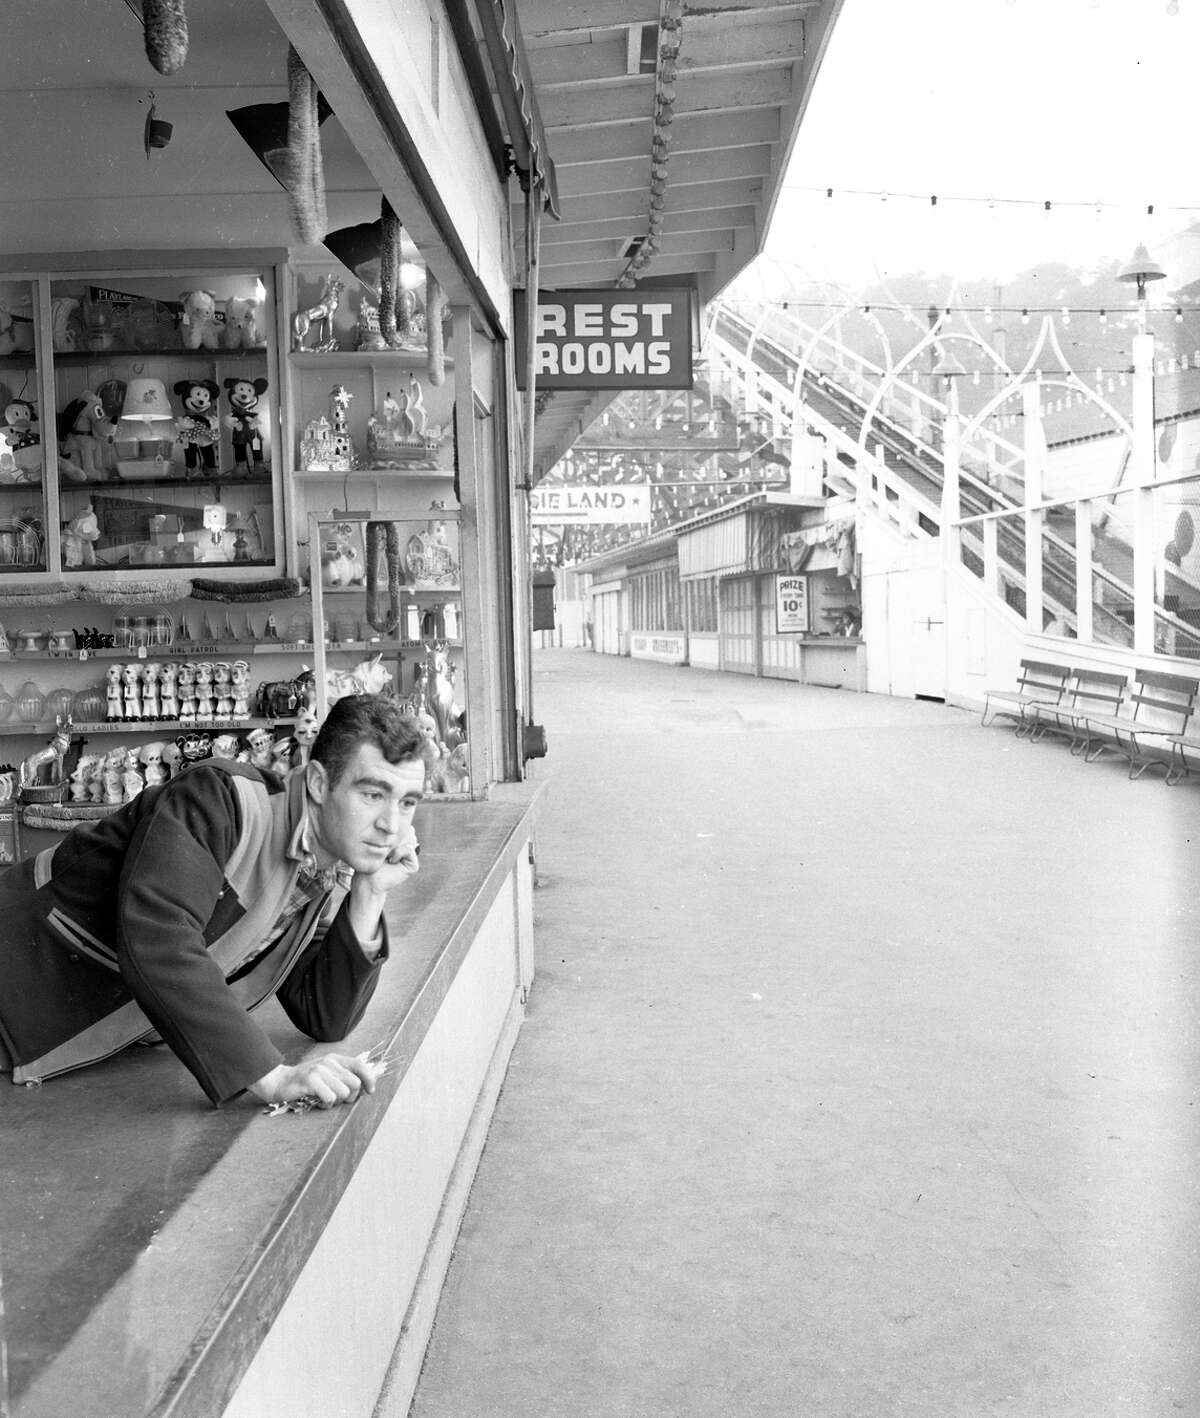 Top: Sutro Baths, which opened next to the Cliff House in 1896, burns during a fire in 1966. Above: Bob Michelson, at a Playland midway concession, waits for customers in 1949.